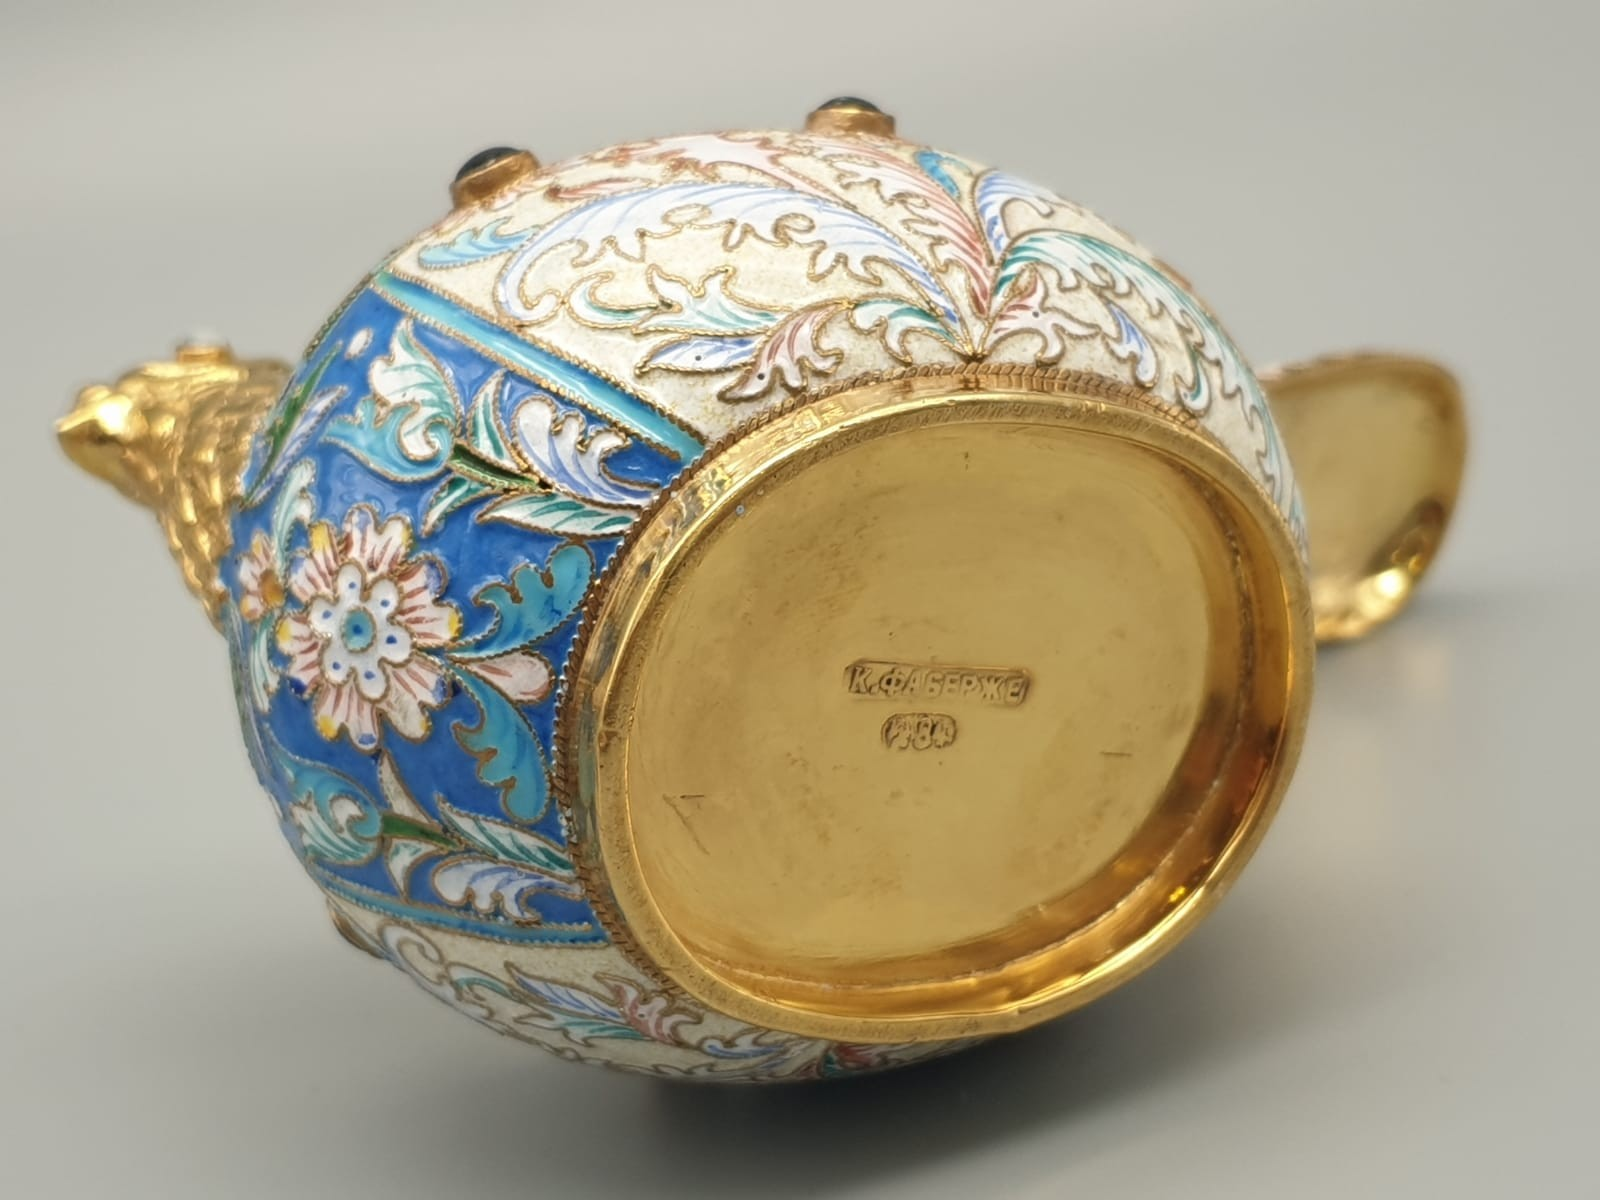 Pair of Russian 20th century silver enamel gemset kavosch bowl in the form of birds, an exquisite - Image 17 of 29